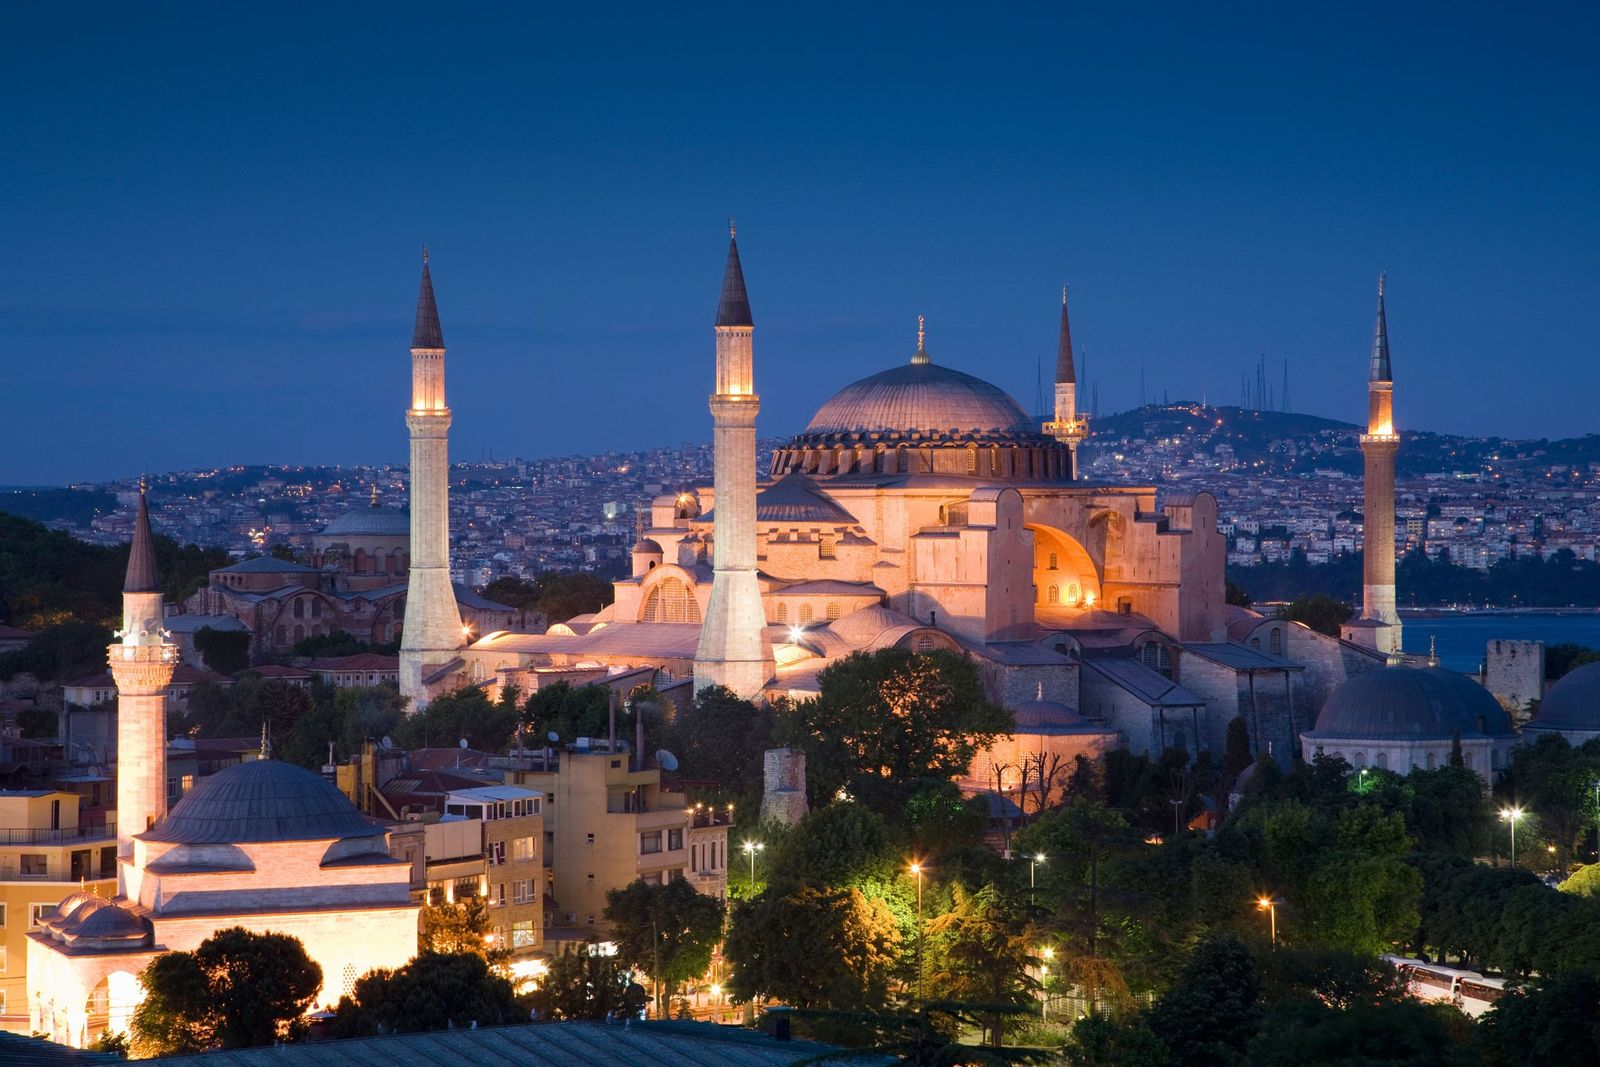 Hagia Sophia stripped of museum status, paving its return to a mosque